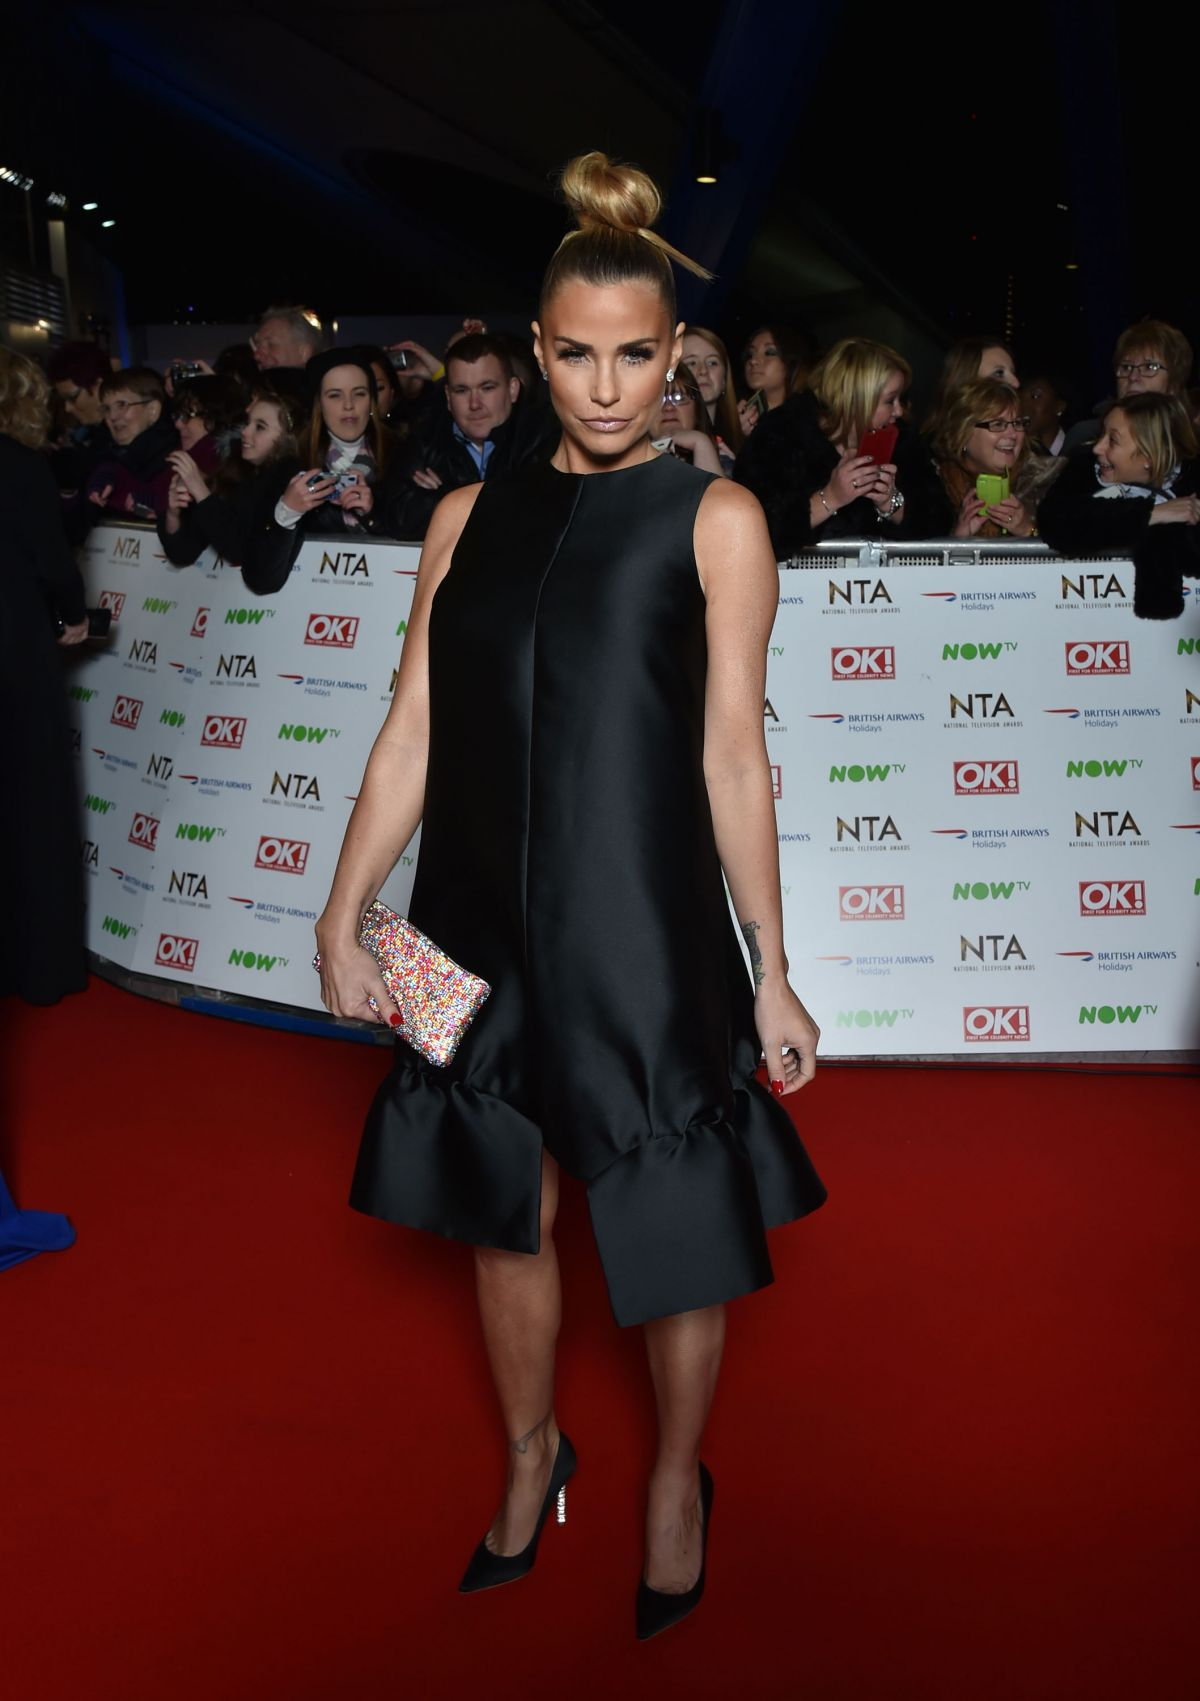 KATIE PRICE at 2016 National Television Awards in London 01/20/2016